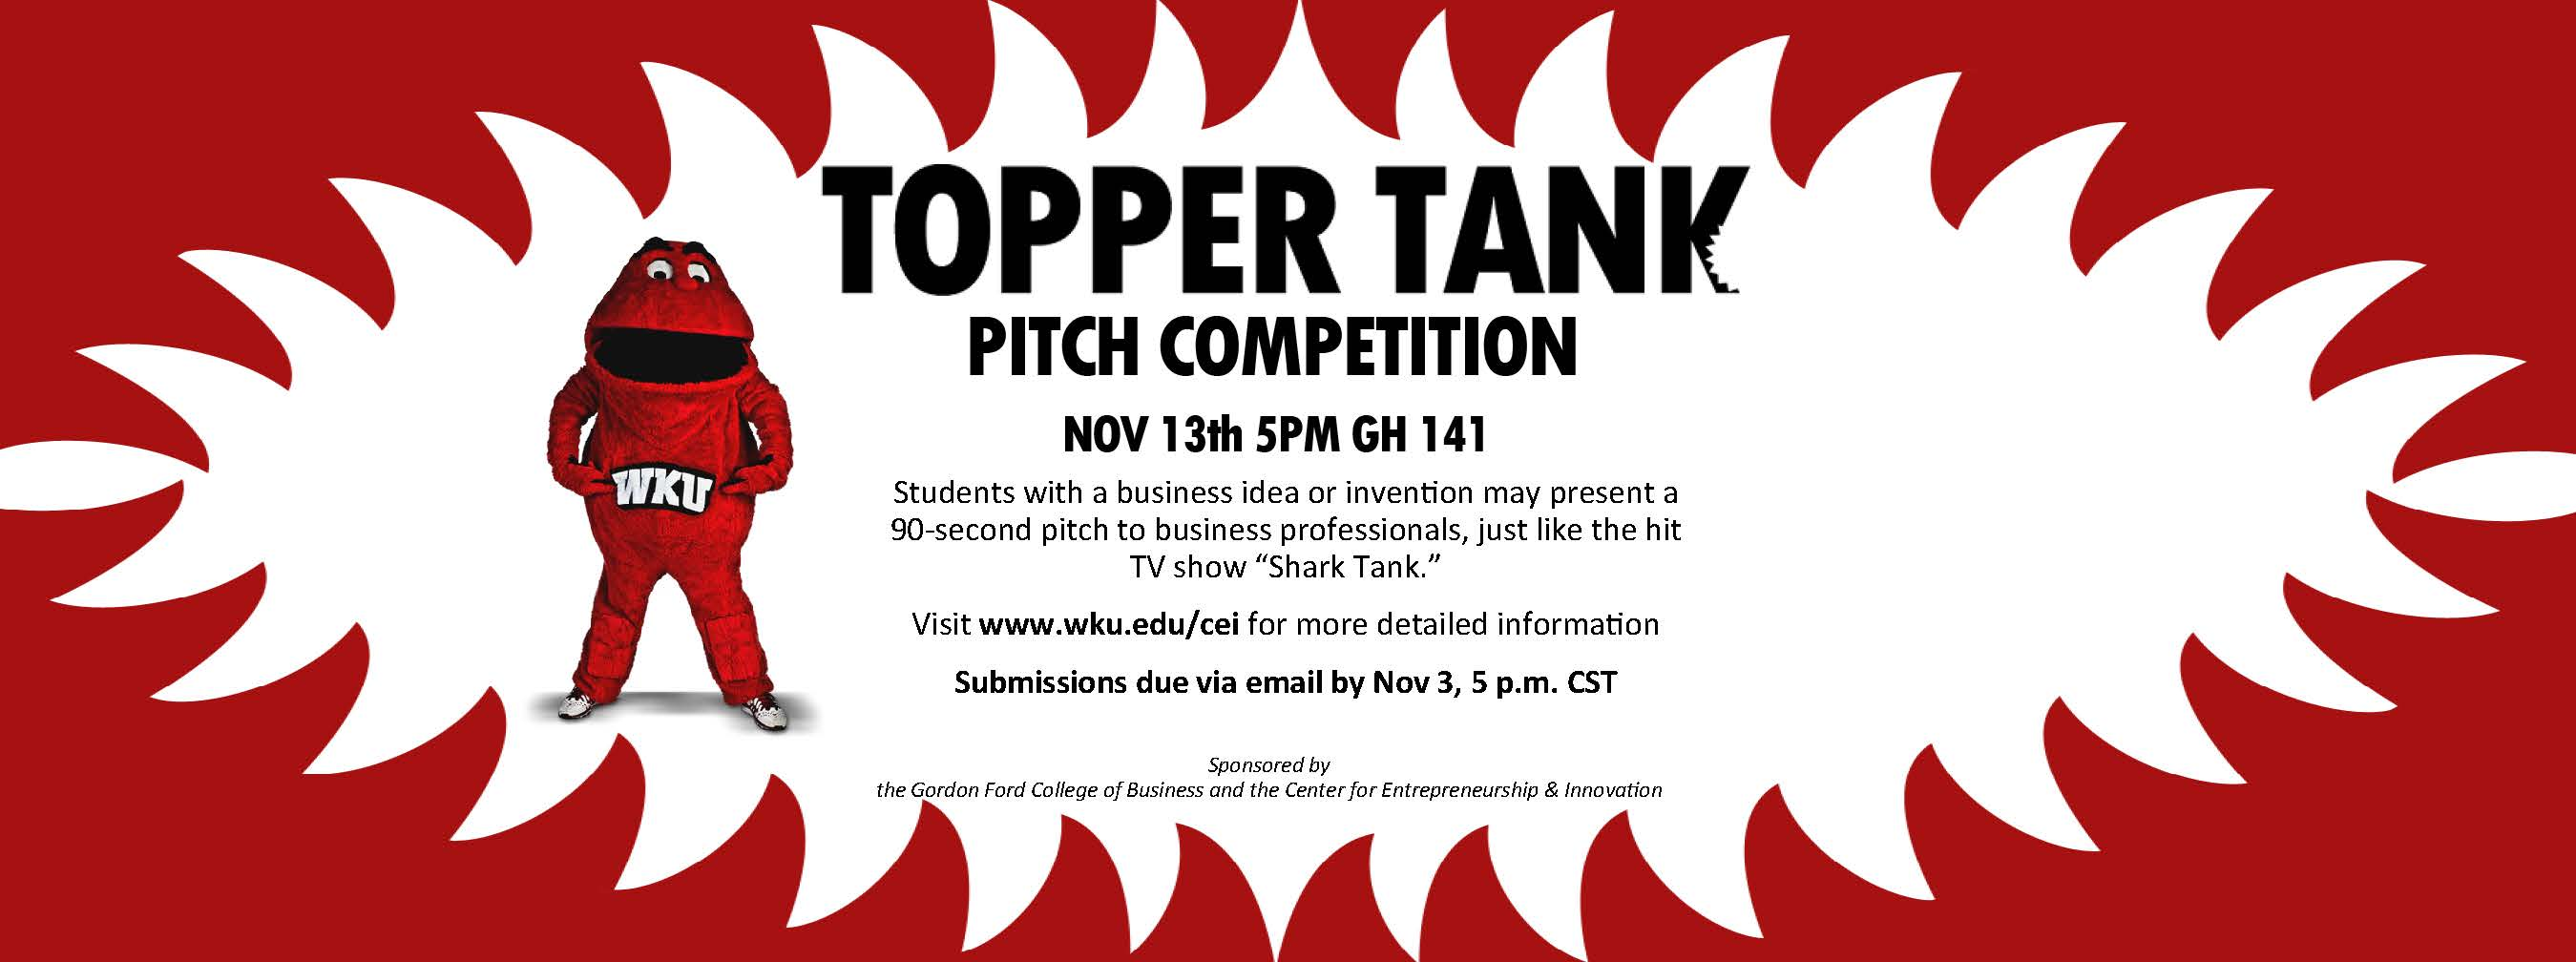 Topper Tank Pitch Competition